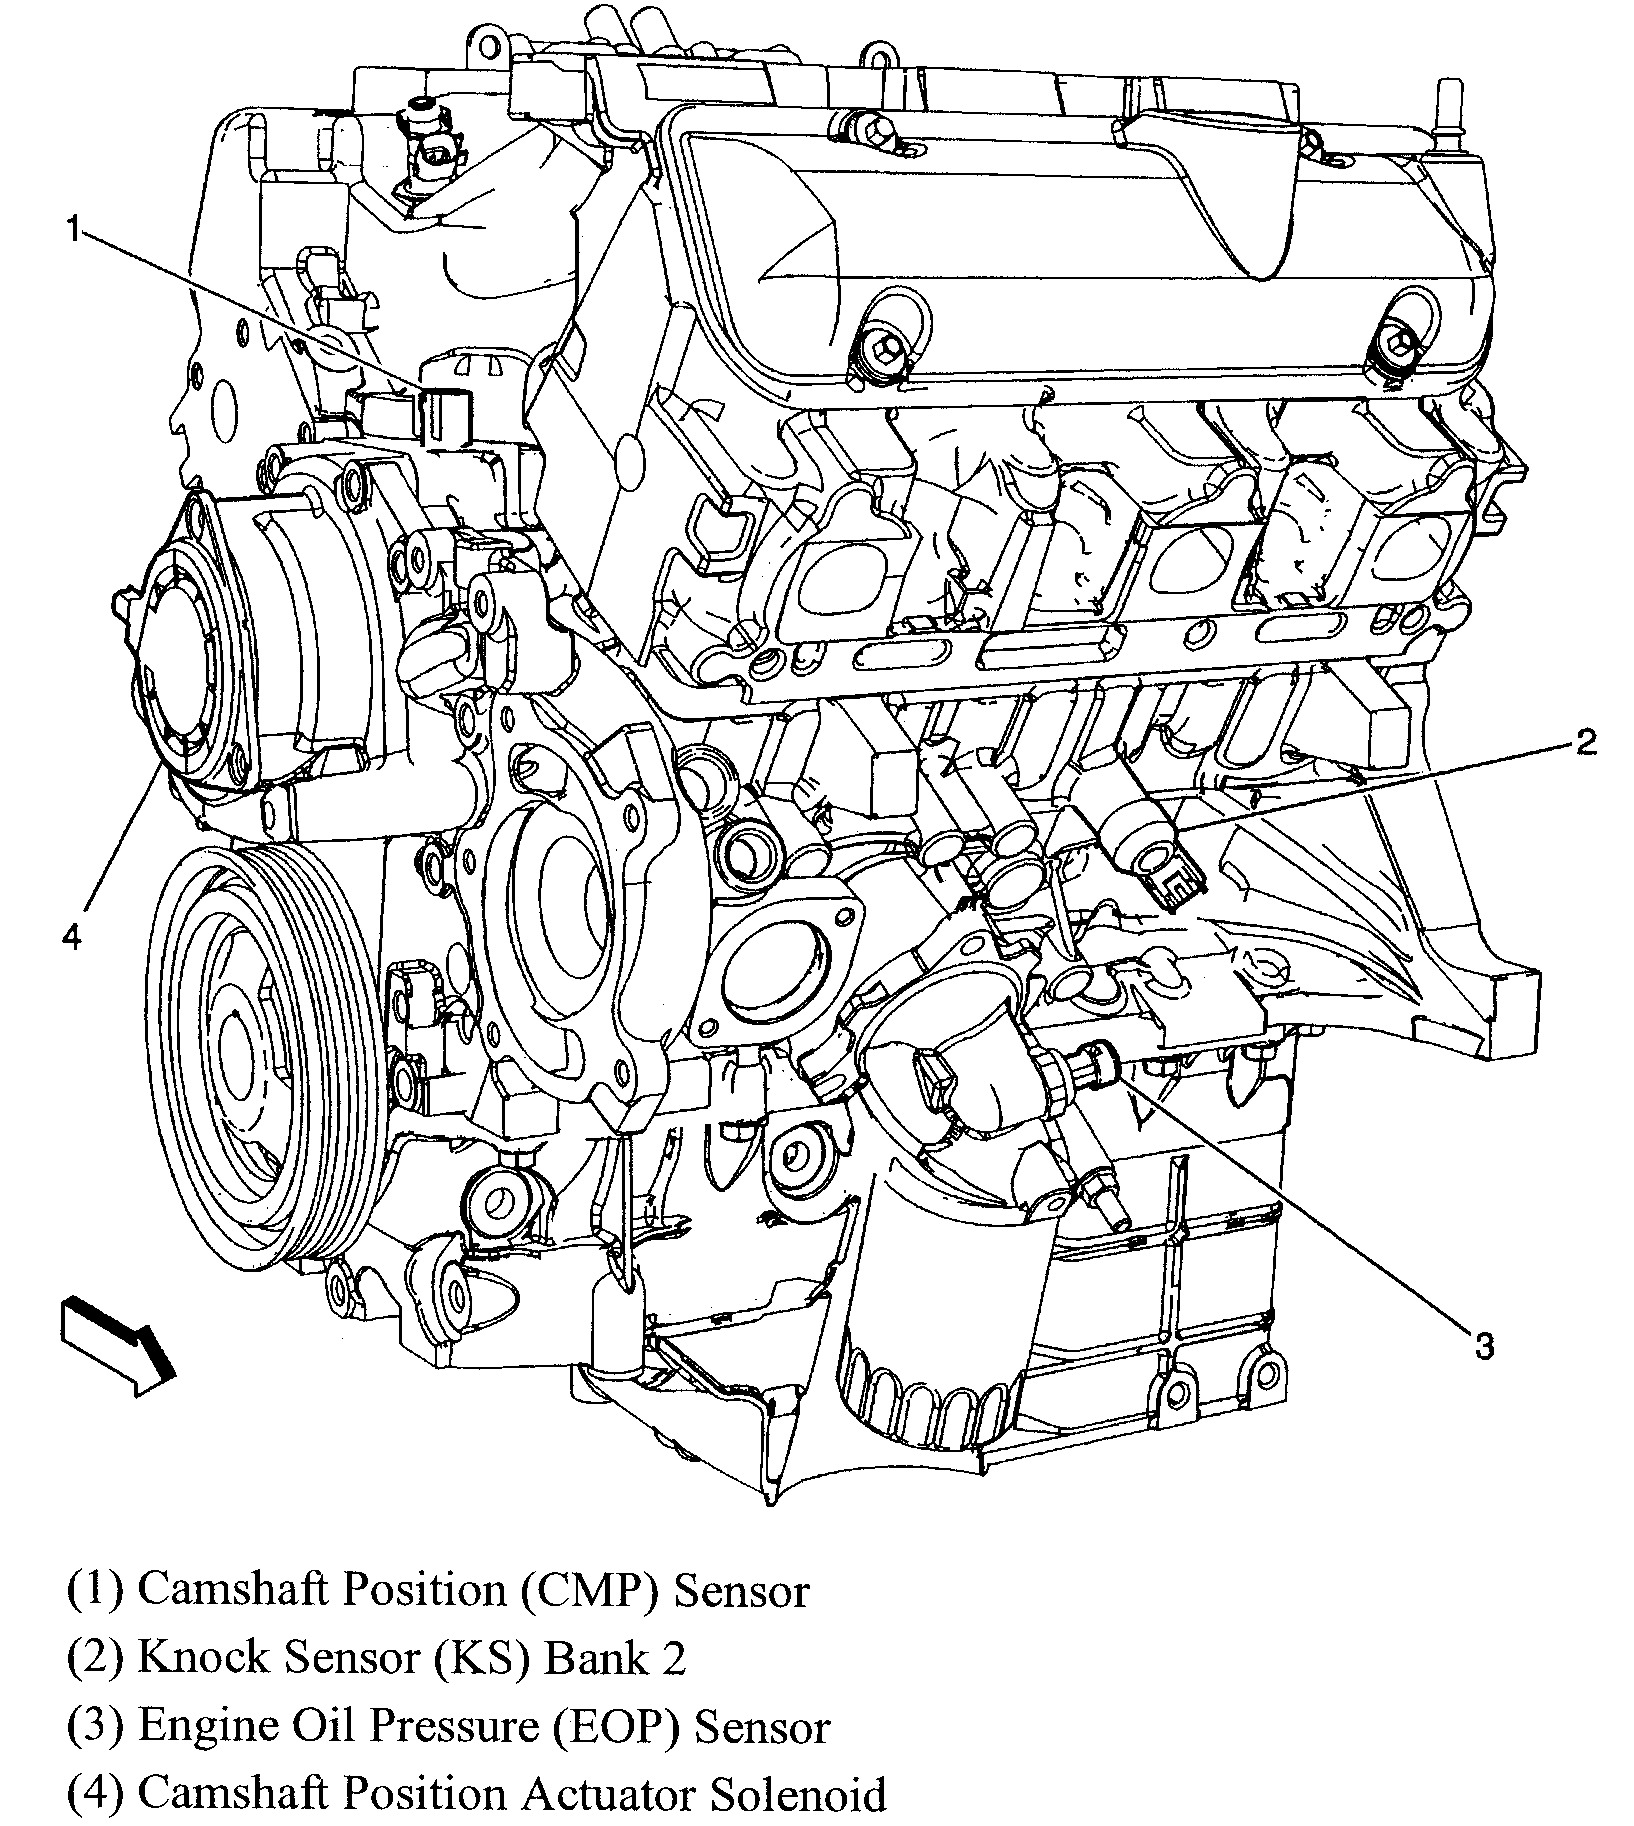 Chevy 3 1 Engine Diagram Camshaft Position Sensor